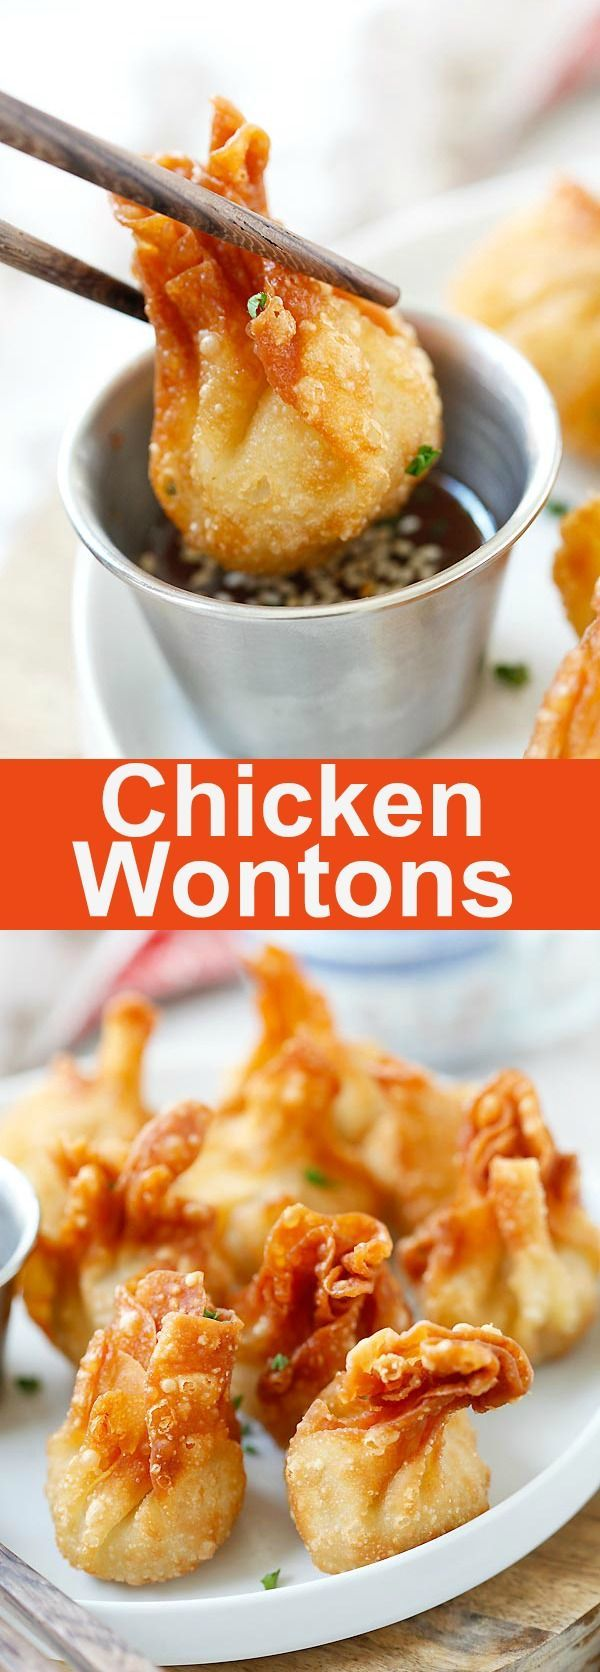 Chicken wontons – easiest and the best fried chicken wontons ever! Takes 20 mins to make including wrapping. Super crispy and yummy, get the easy recipe   http://rasamalaysia.com